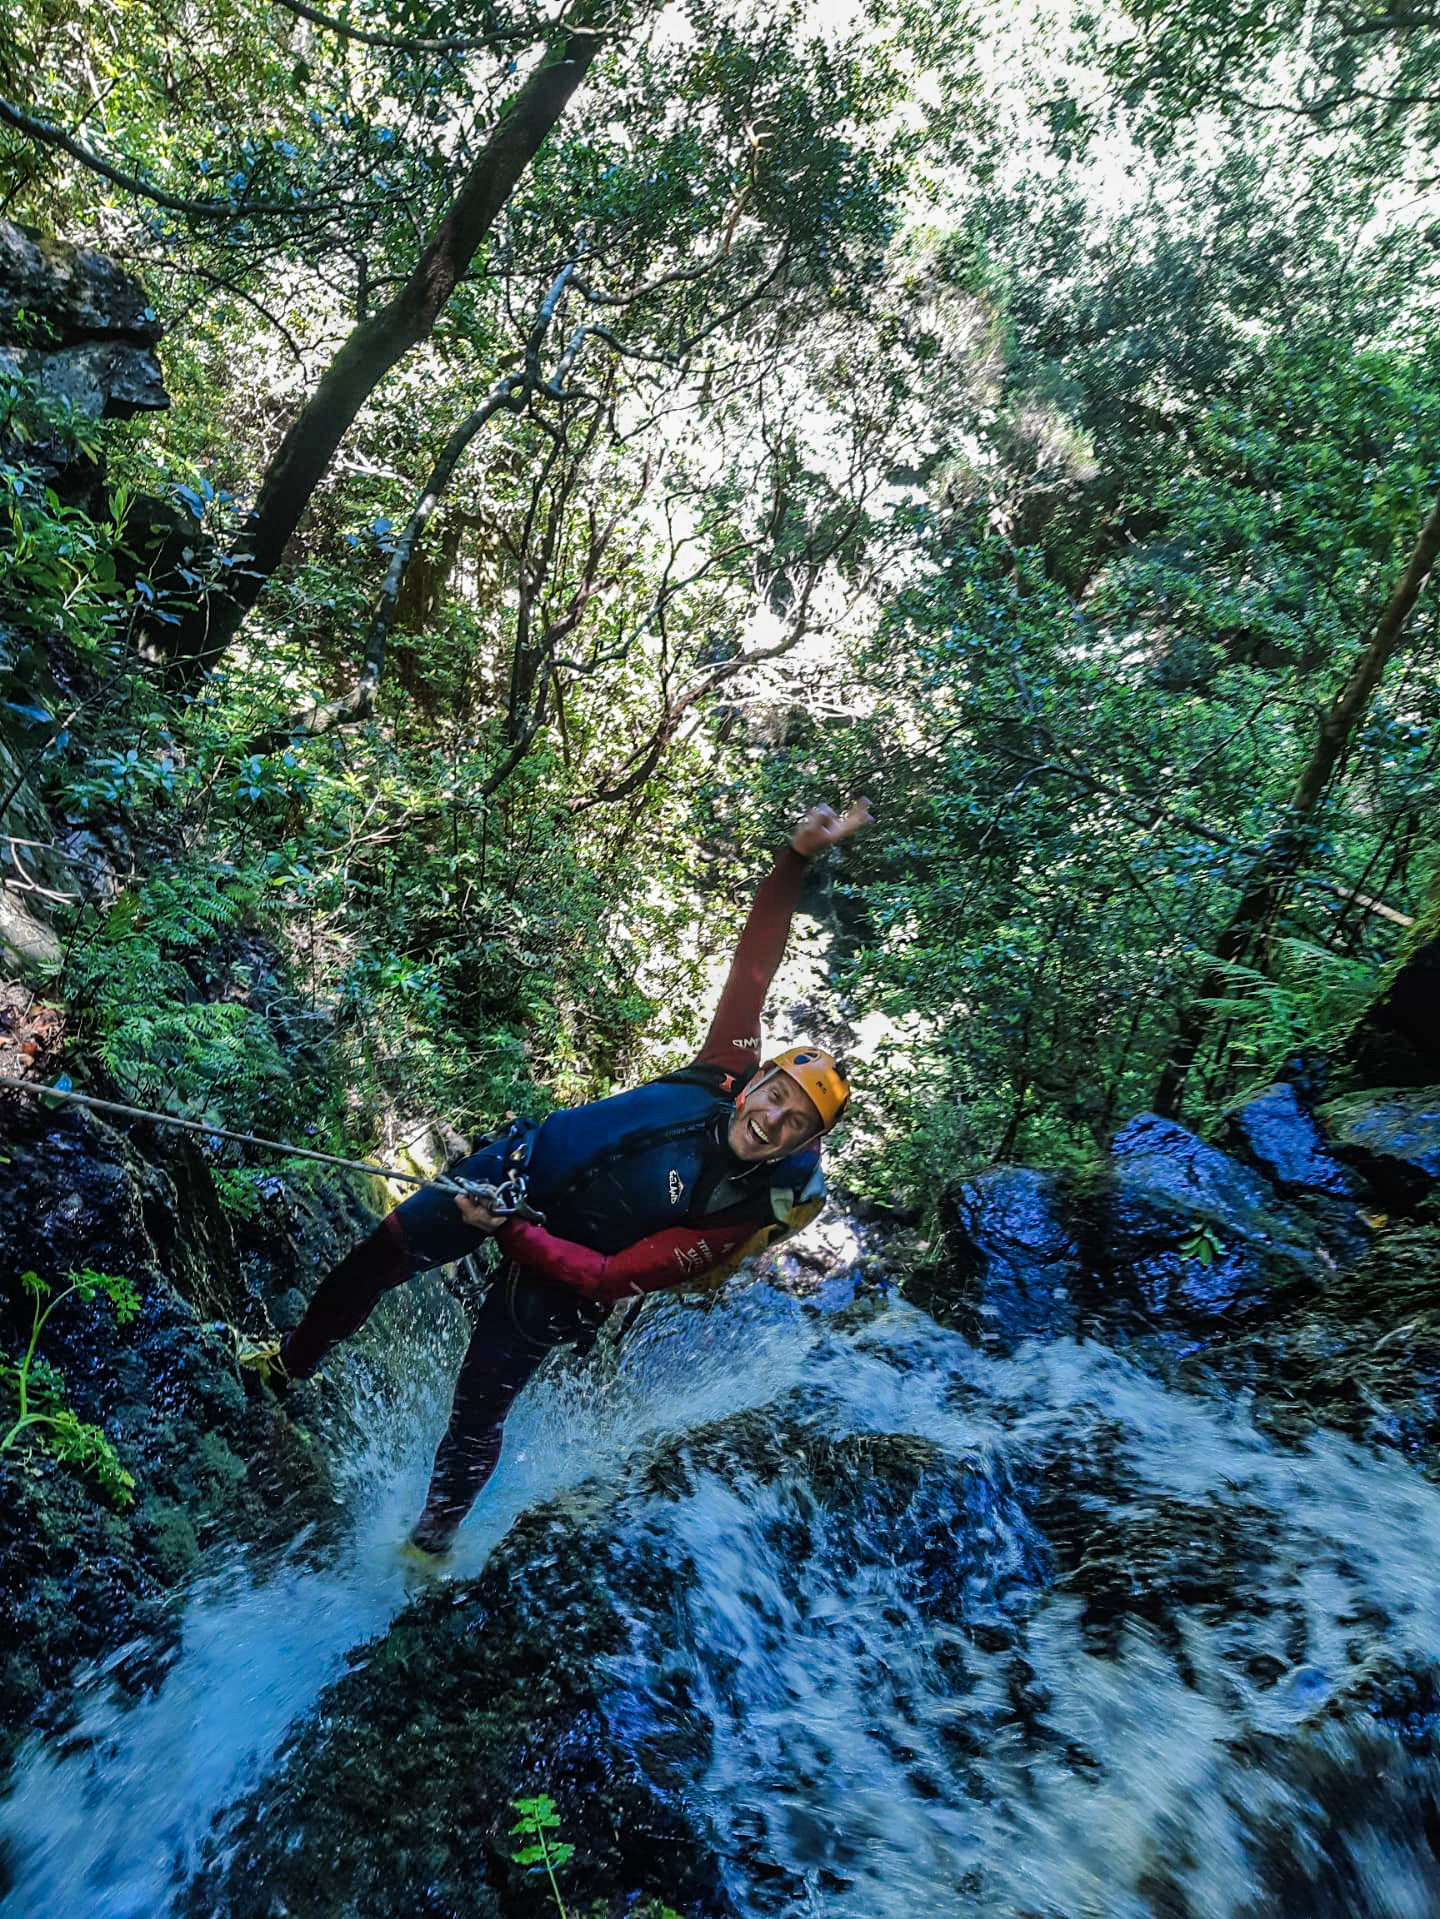 Much more than just canyoning…